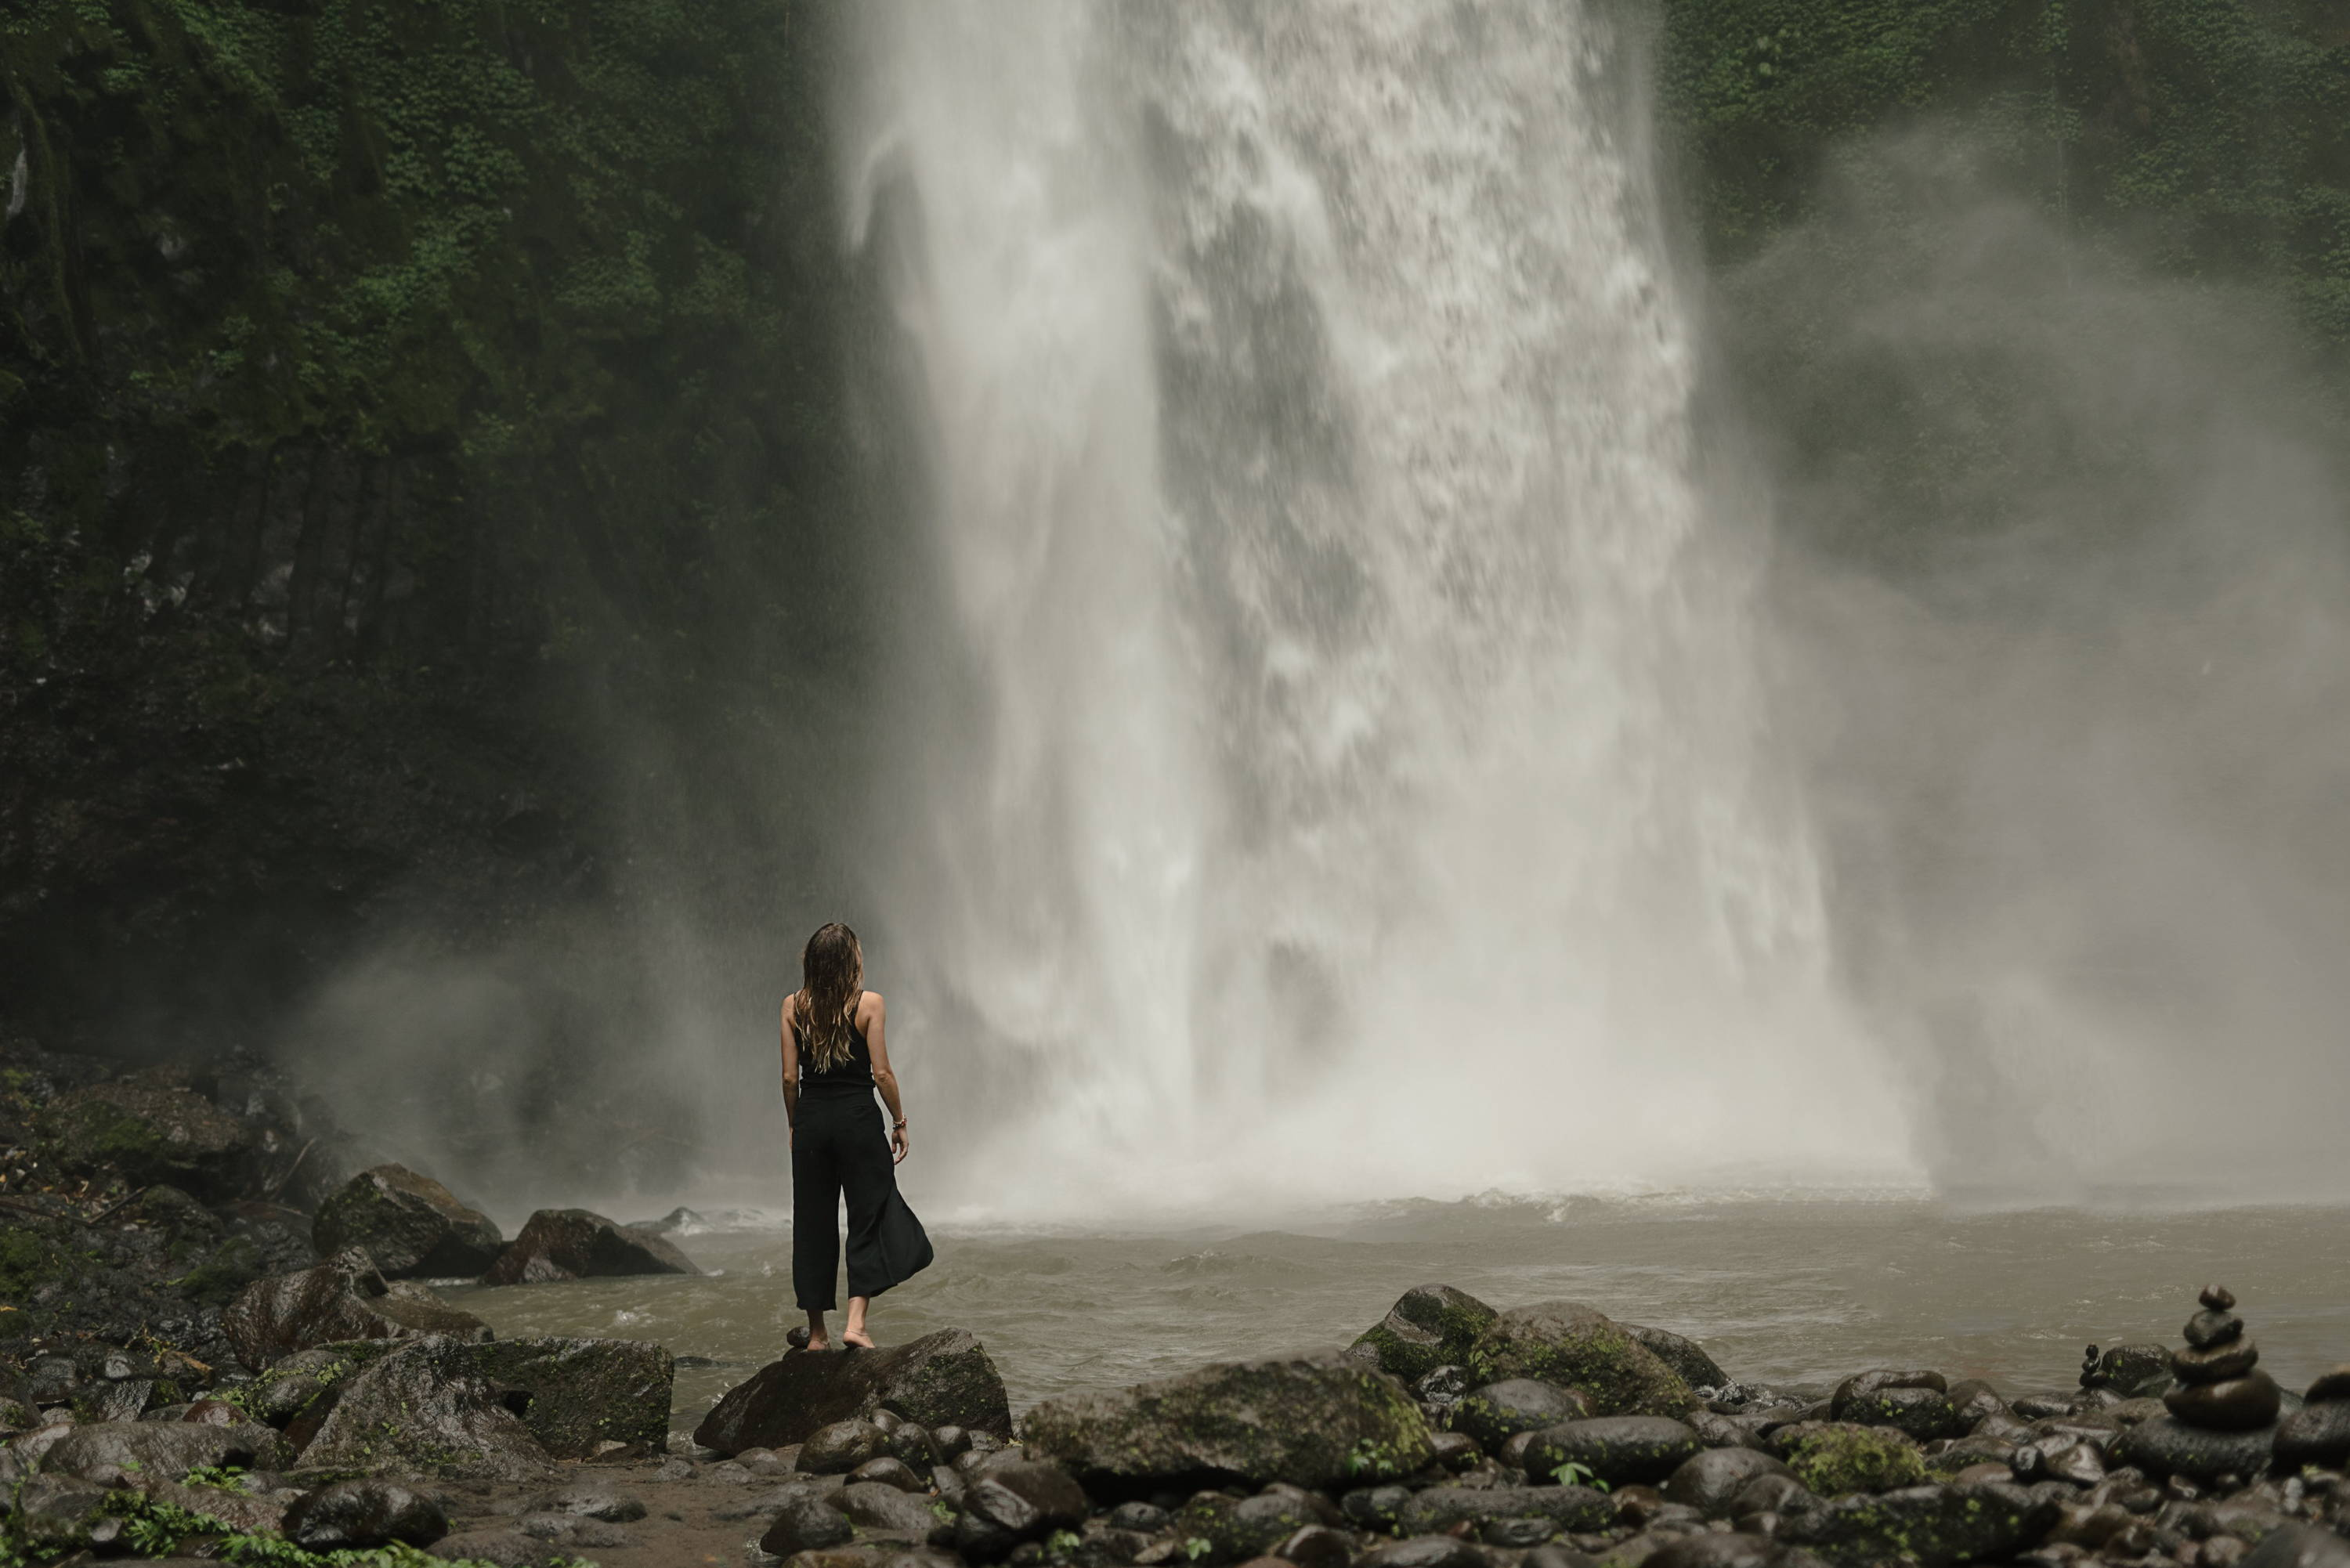 Small aperture: woman pauses at foot of waterfall